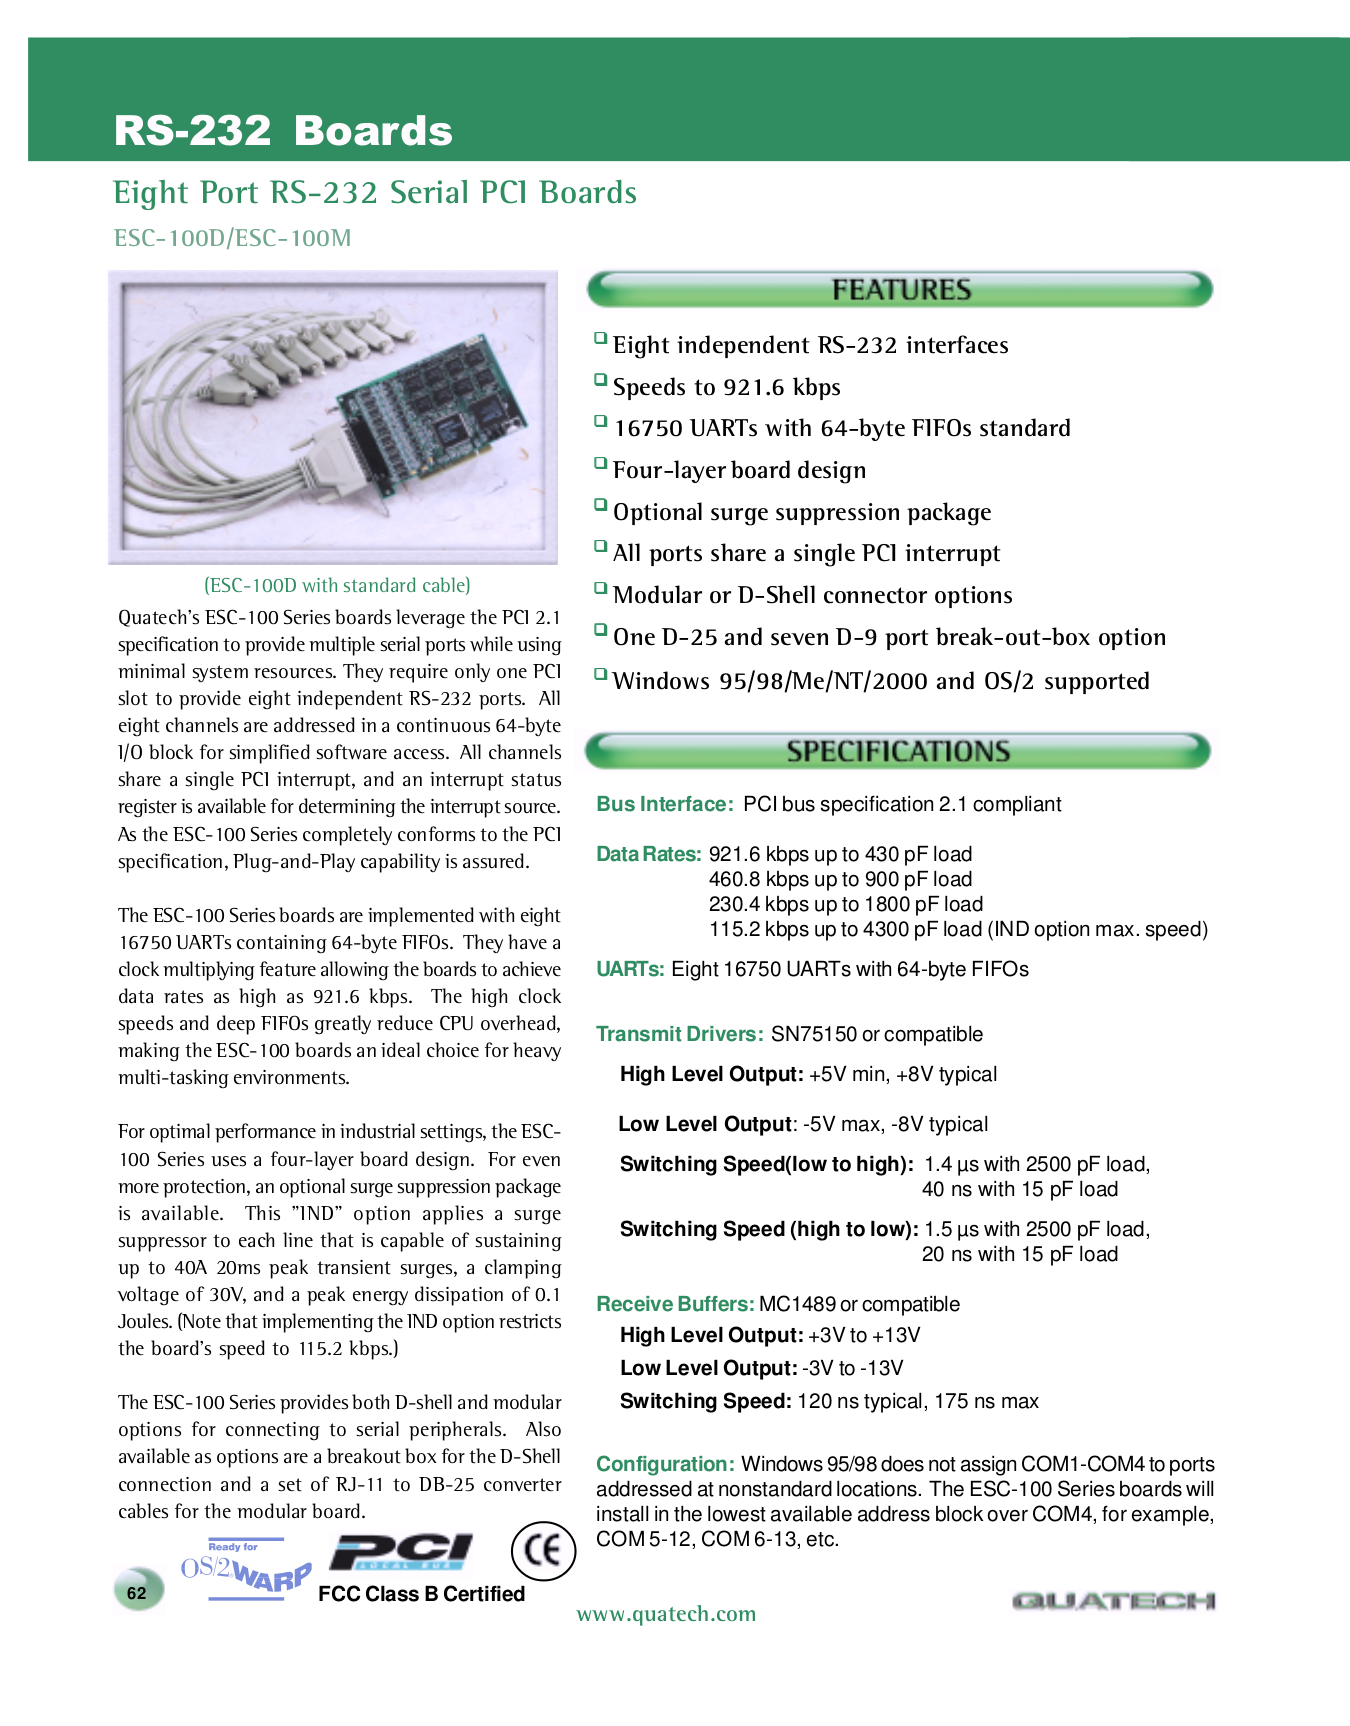 pdf for Quatech Other ESC-100M PCI Serial Boards manual